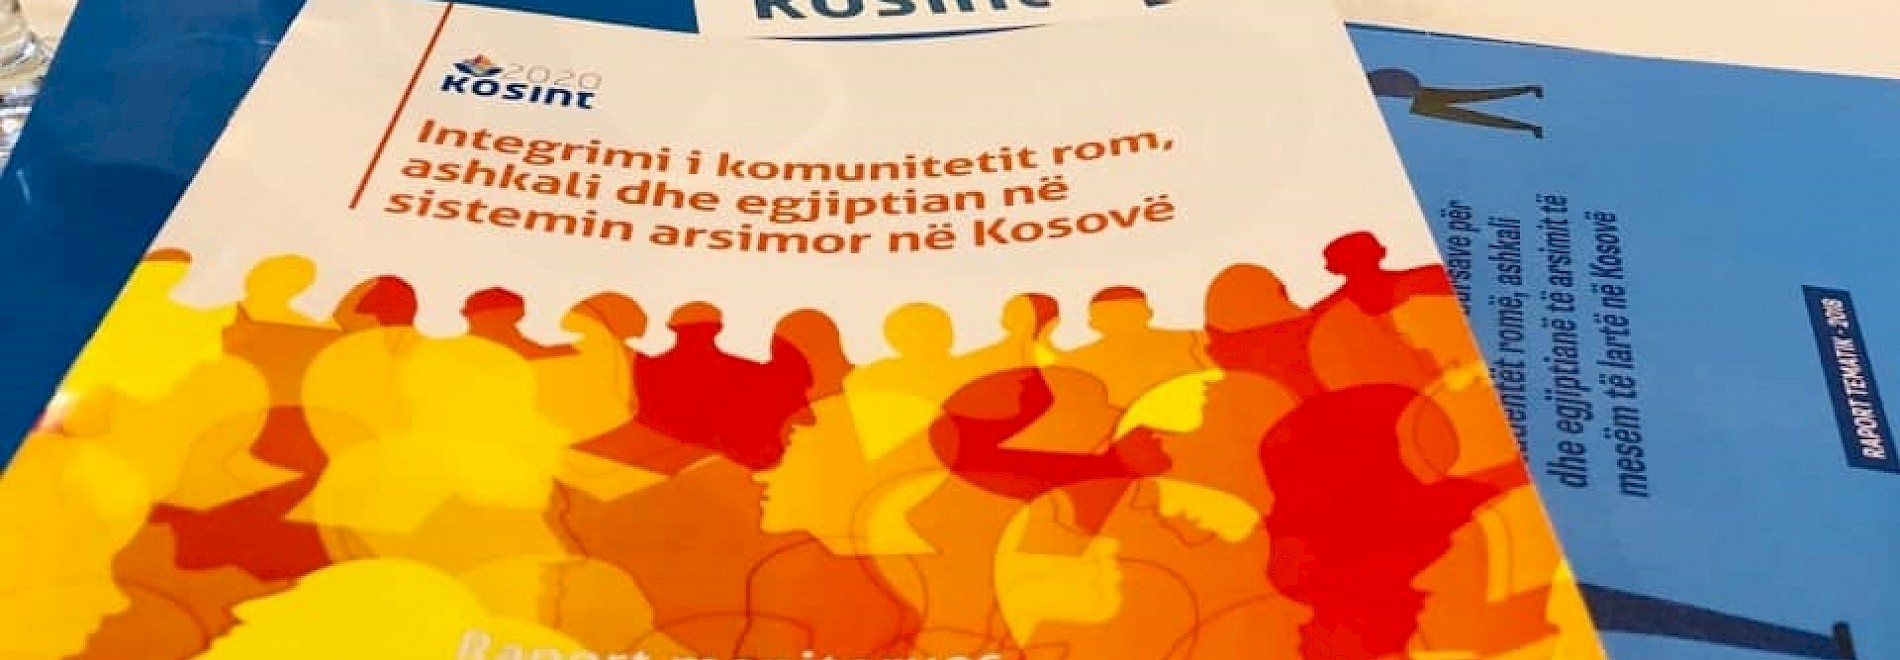 Integration of Roma, Ashkali and Egyptian communities into the education system in Kosovo in 2018